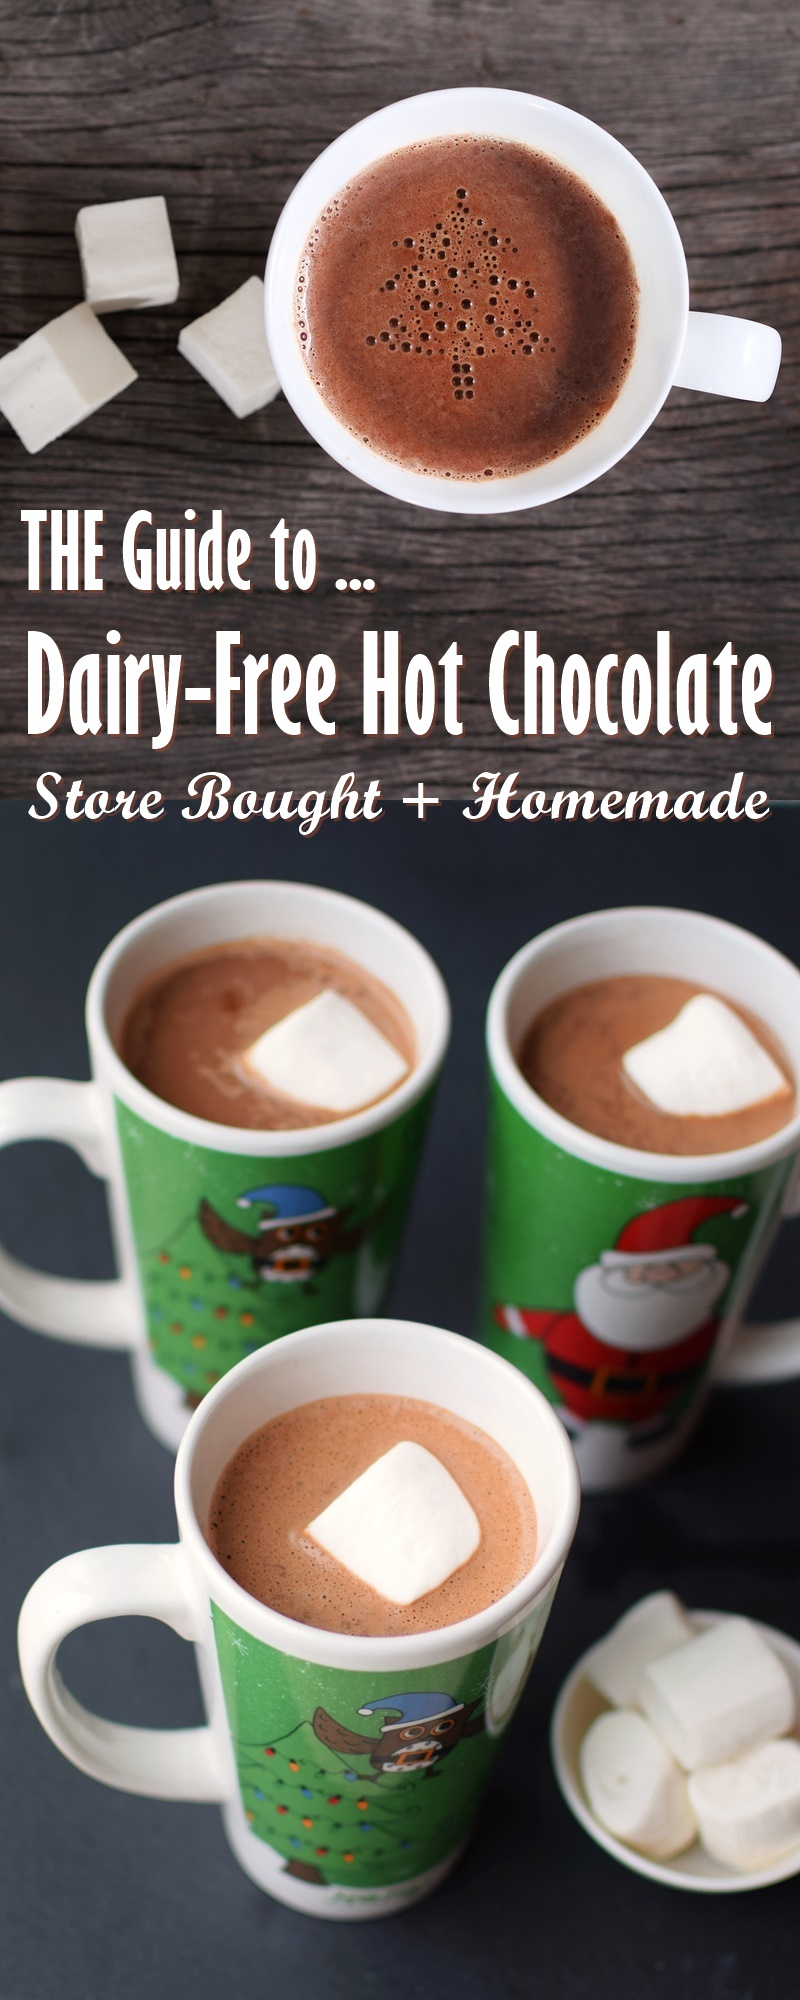 Guide to Dairy-Free Hot Chocolate - Brands, Recipes, and Quick Fix